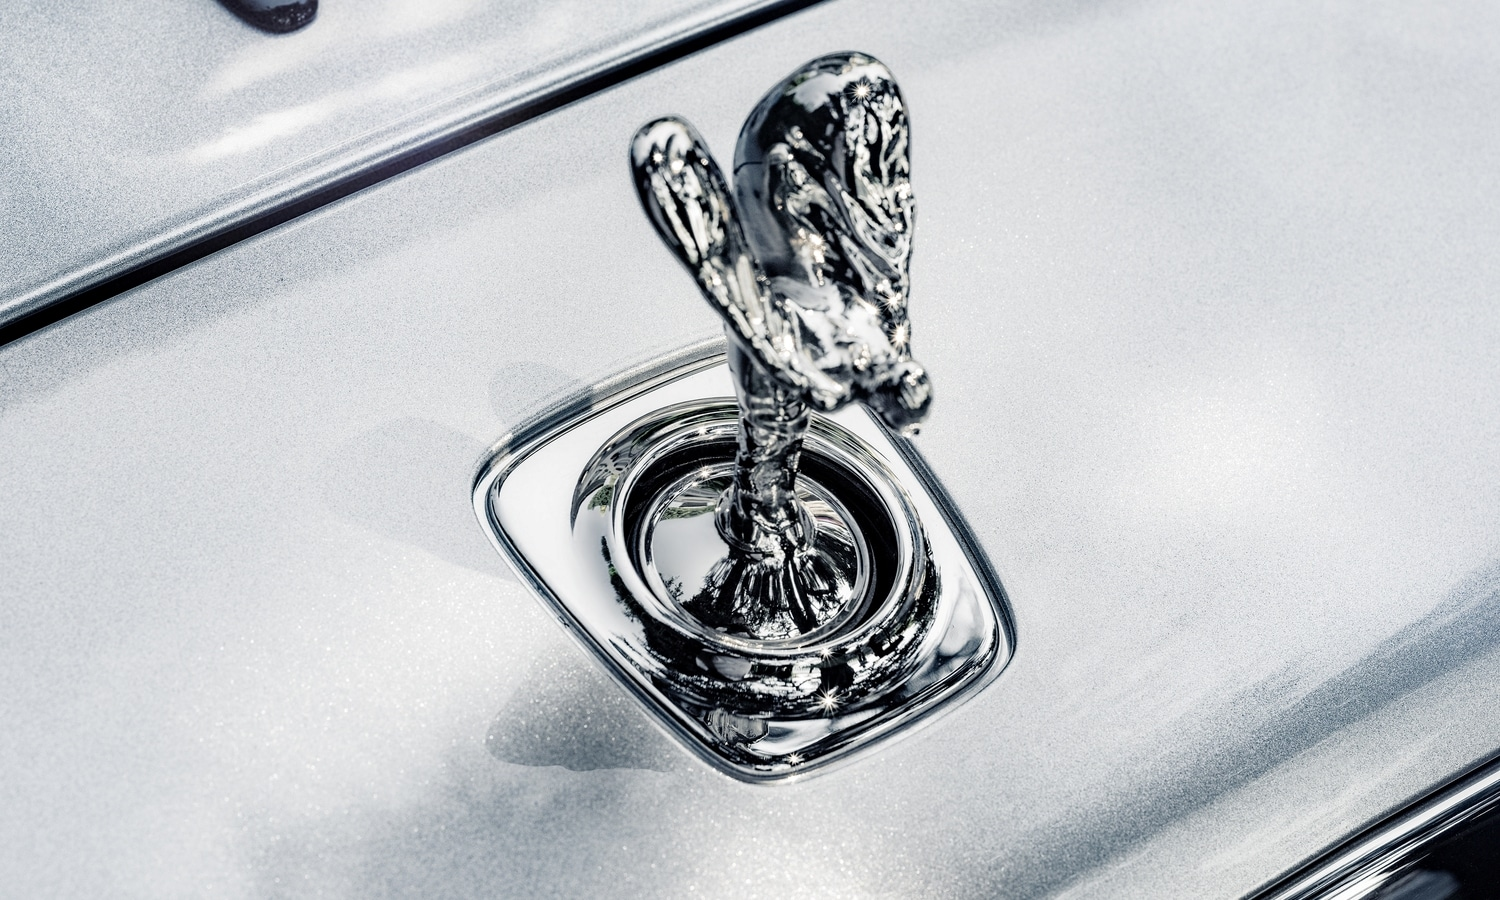 Spirit of Ecstasy de Rolls Royce